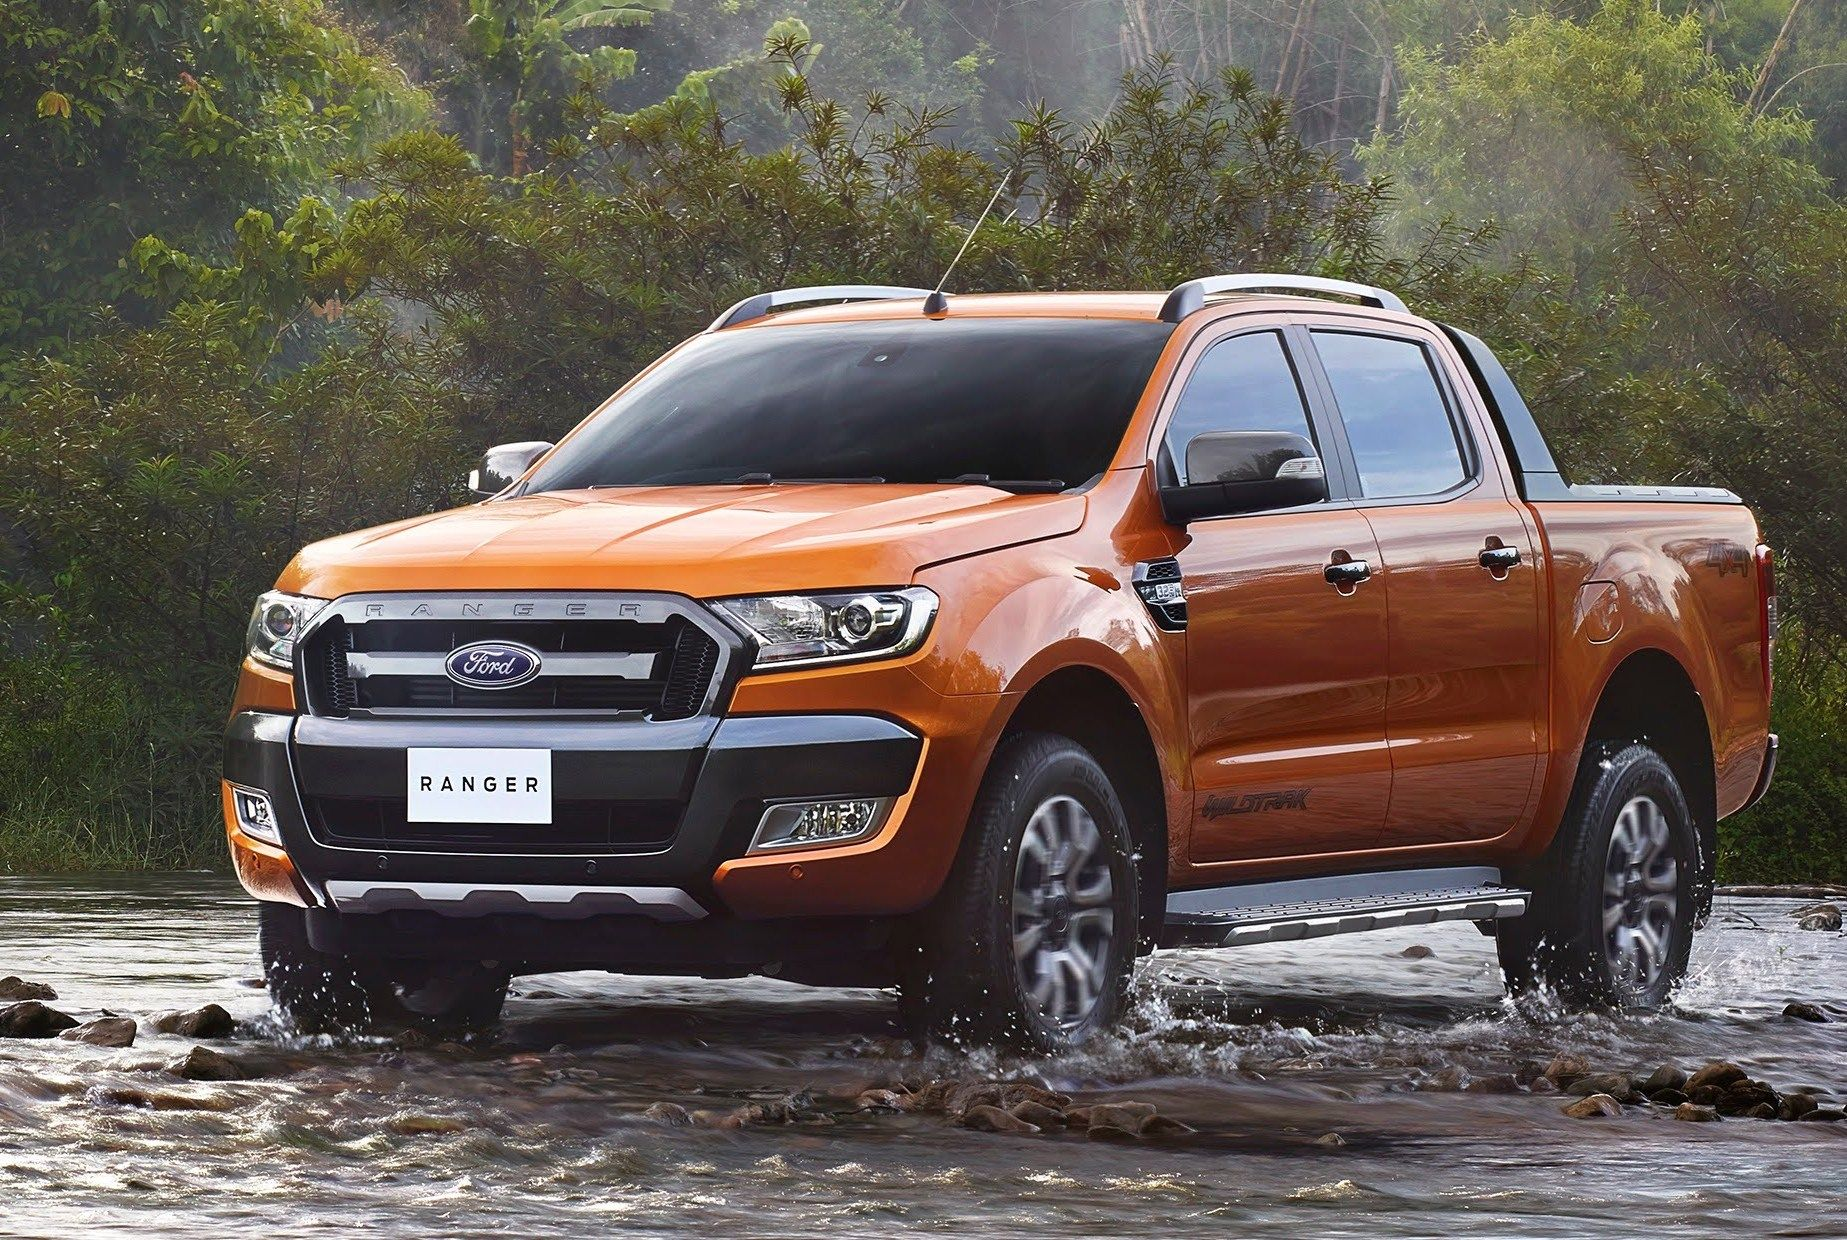 My Second Car Trong 2020 Ford Ranger Xe Ban Tải Ford